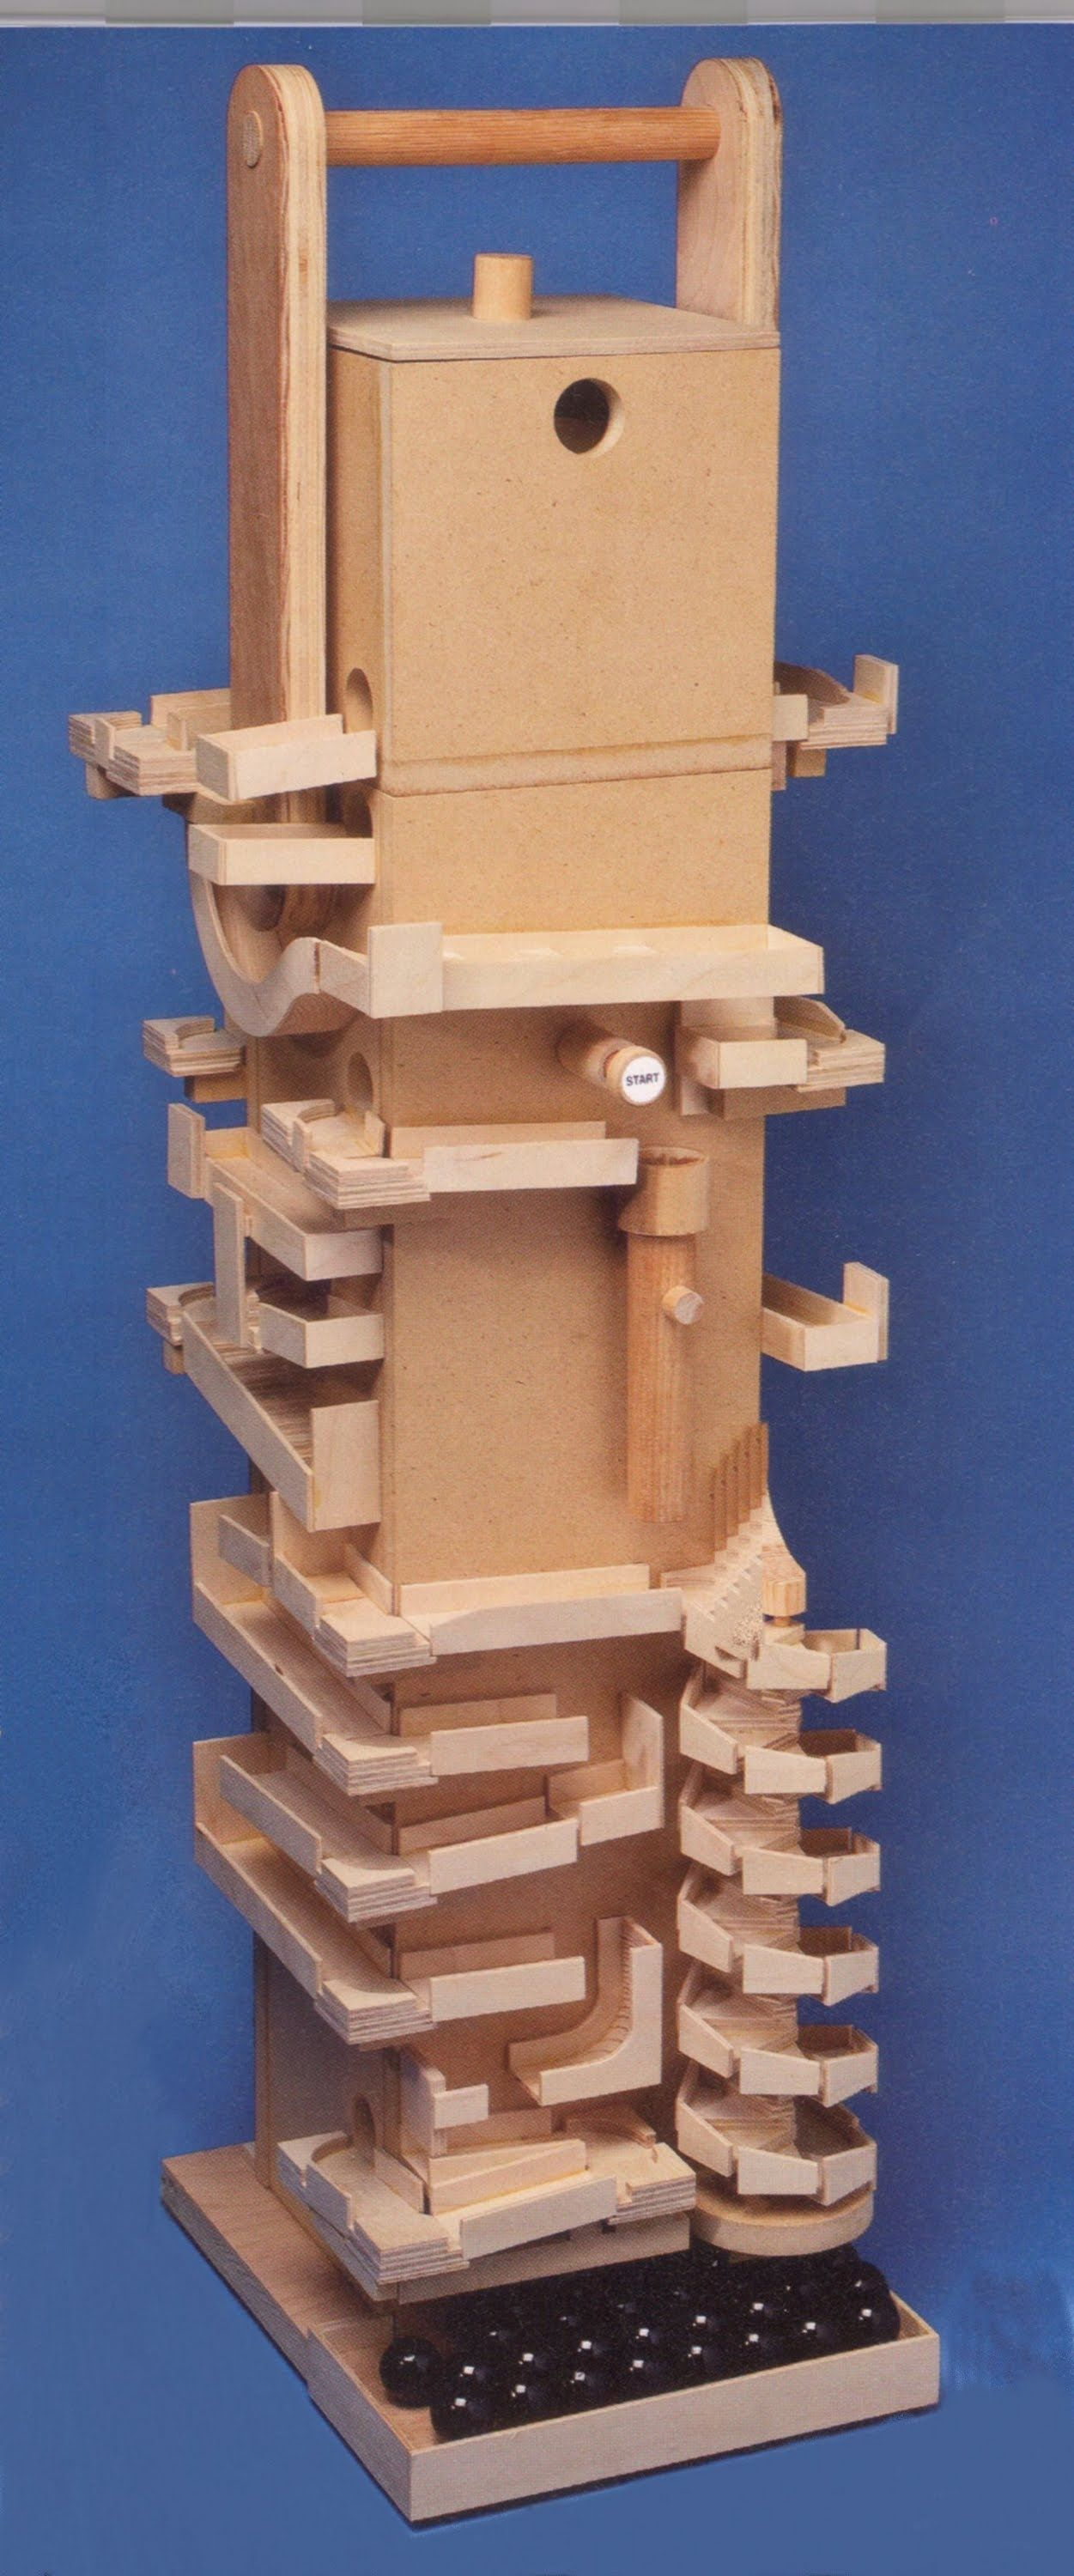 Marble Machine 4 Marble Machine Marble Toys